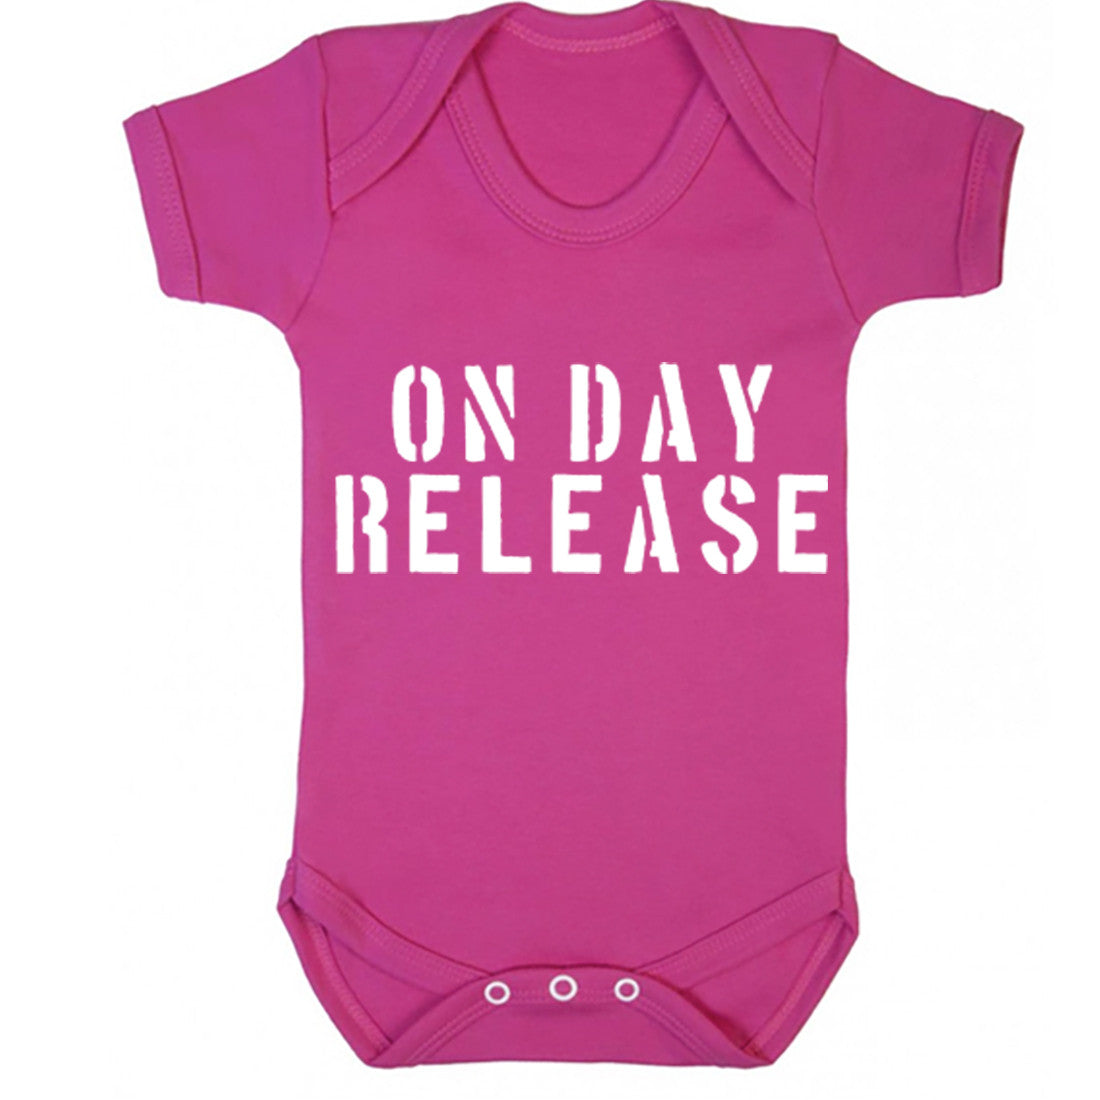 On Day Release Baby Vest K1213 - Illustrated Identity Ltd.